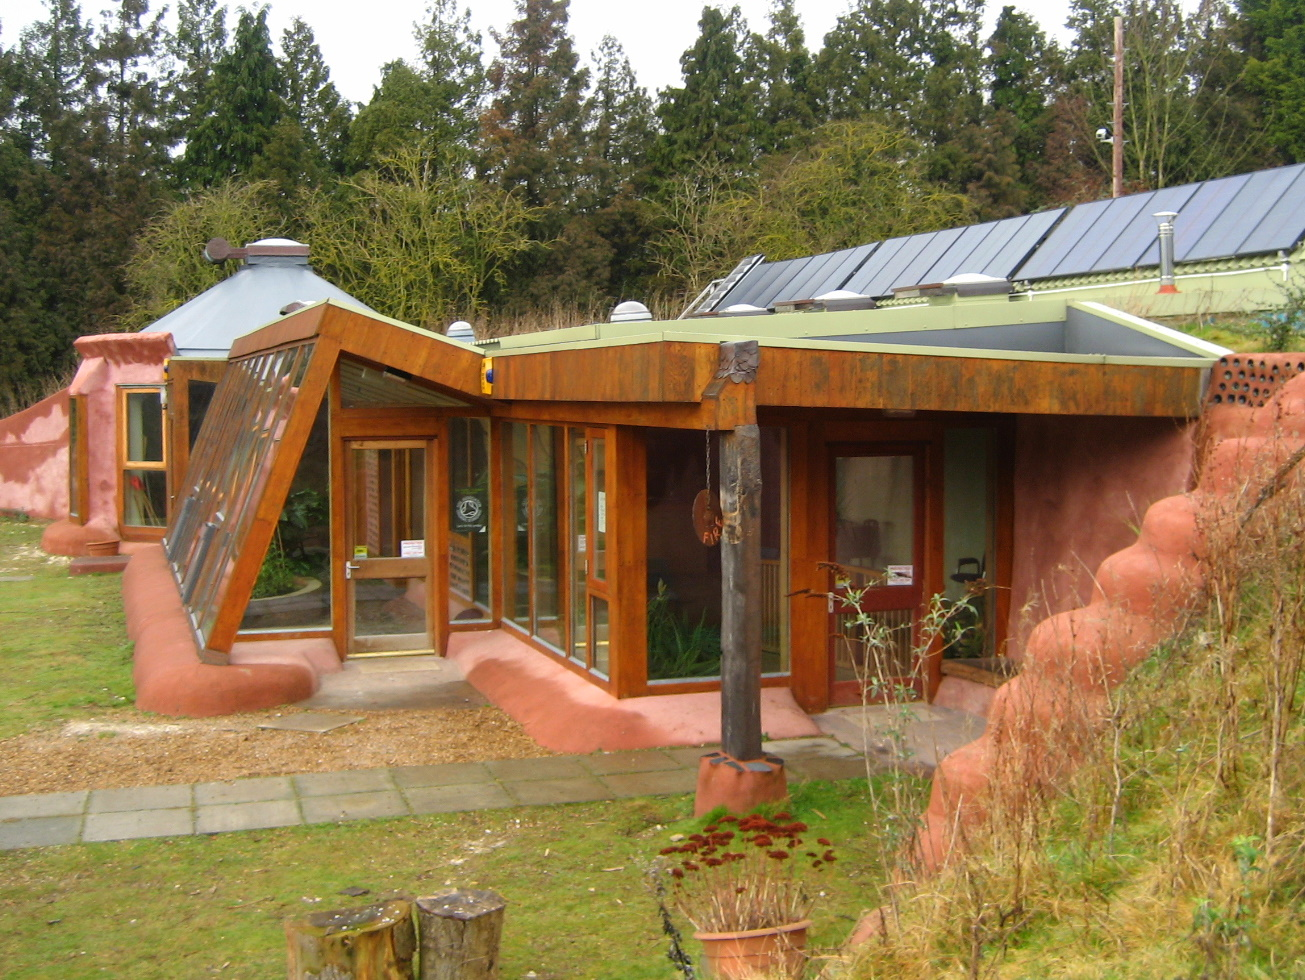 Earthship wikidwelling fandom powered by wikia for Green homes designs